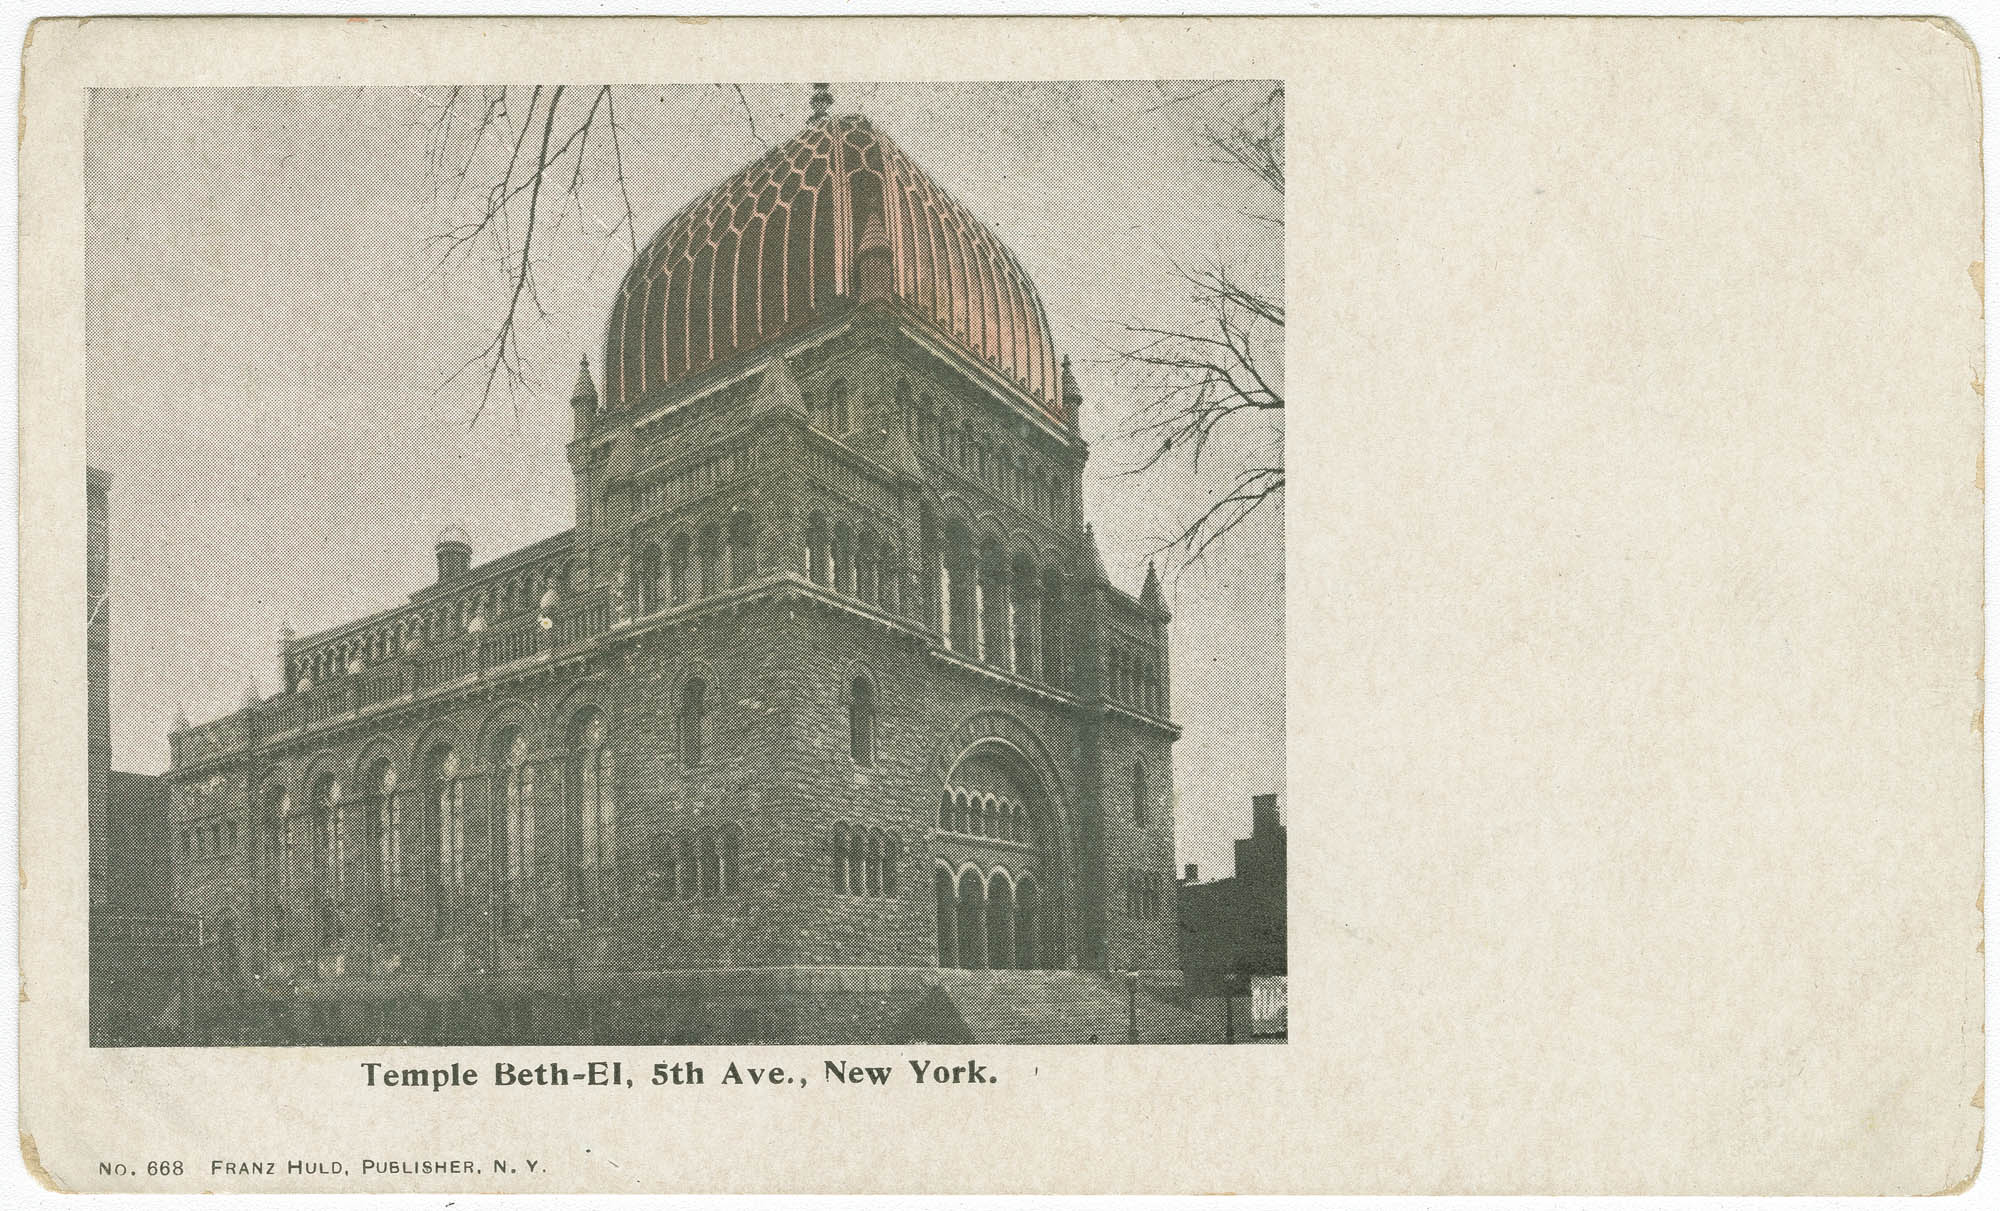 Temple Beth-El, 5th Ave., New York